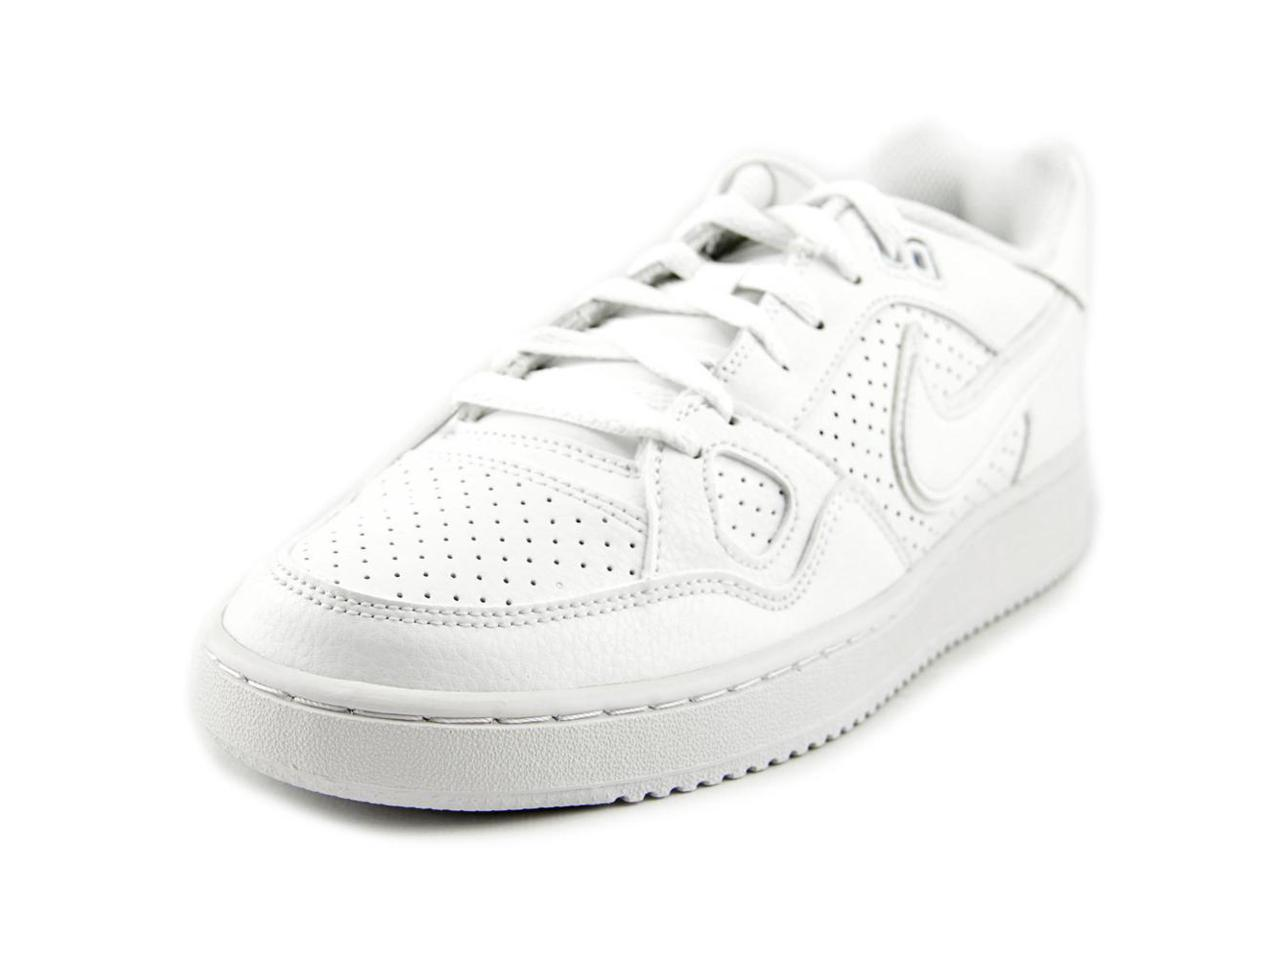 Nike Son of Force White Men US 11.5 White Force Sneakers e54341